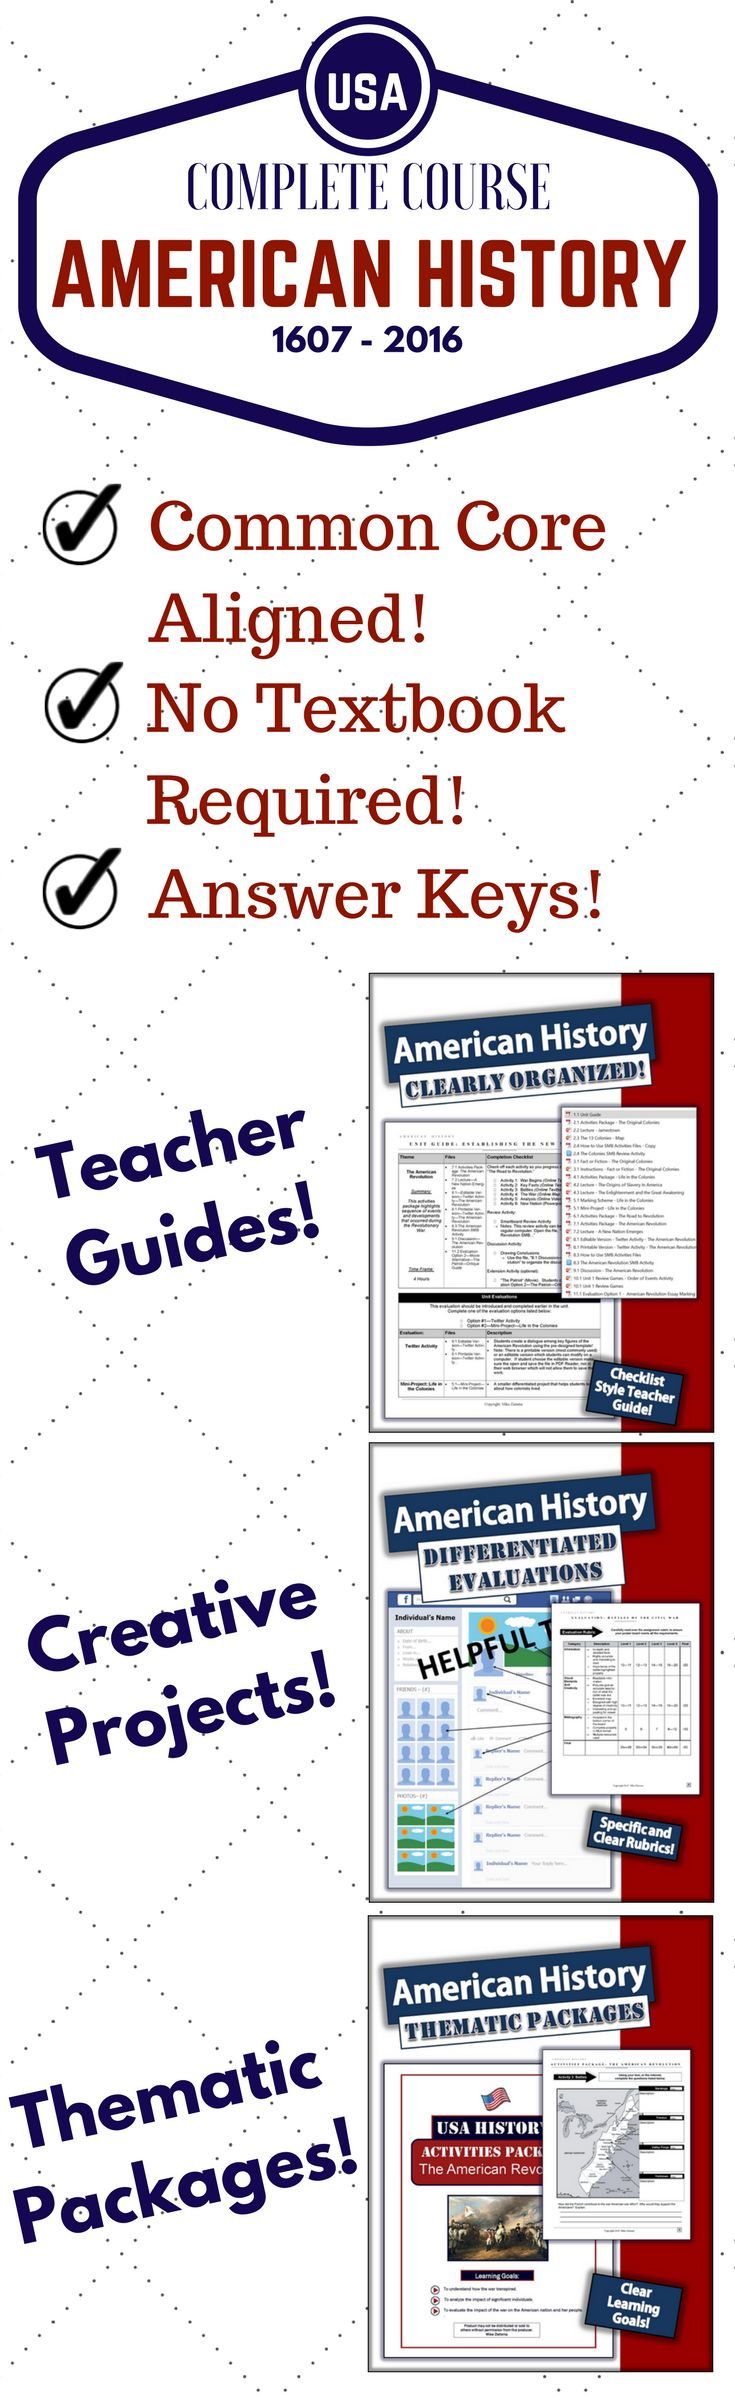 Complete American History Course!!! Includes activities, answer keys, teacher guides, evaluations and more!